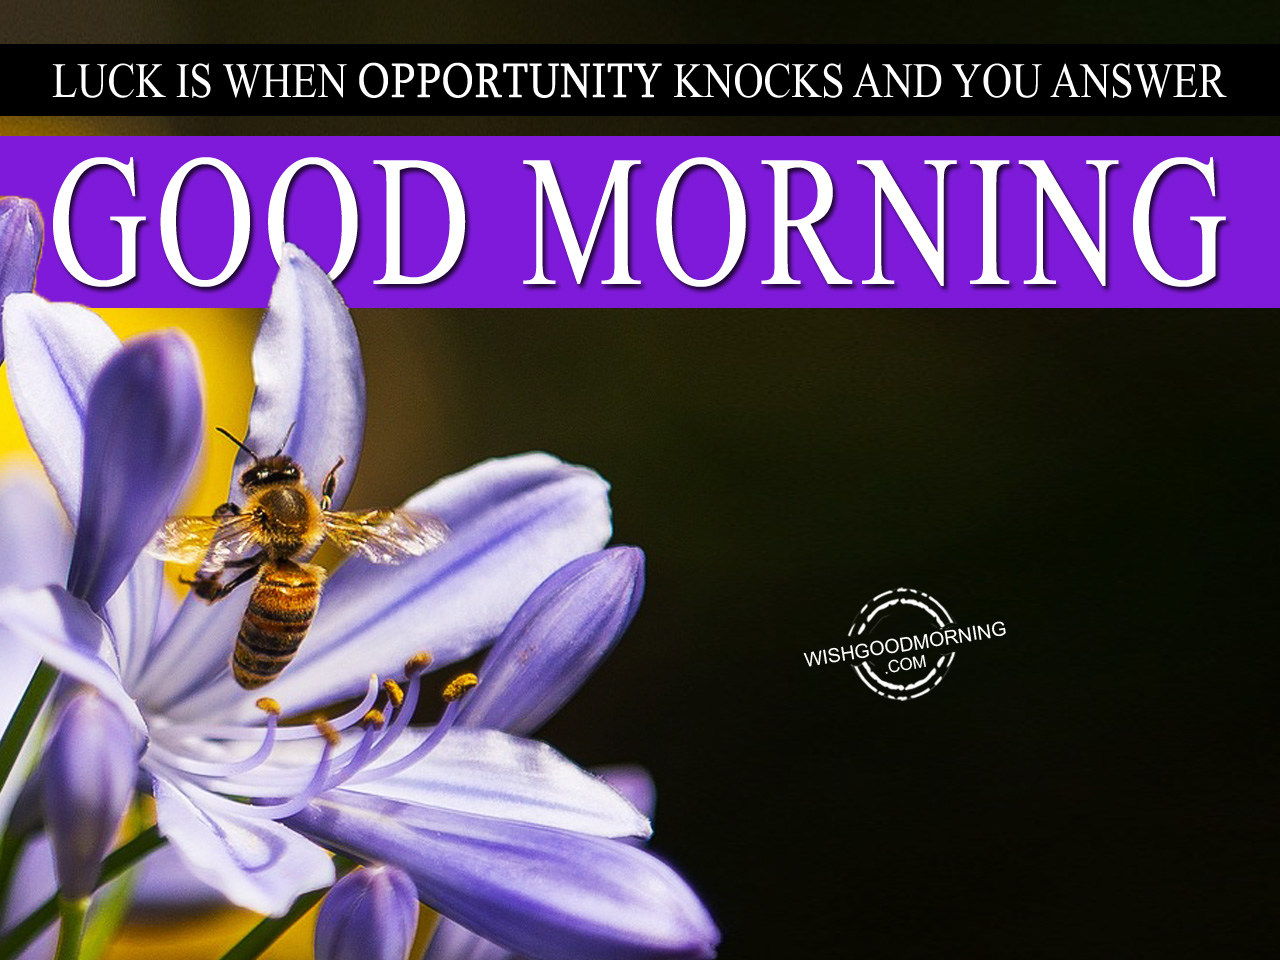 Good Morning Answer : Luck is when opportunity knocks and you answer good